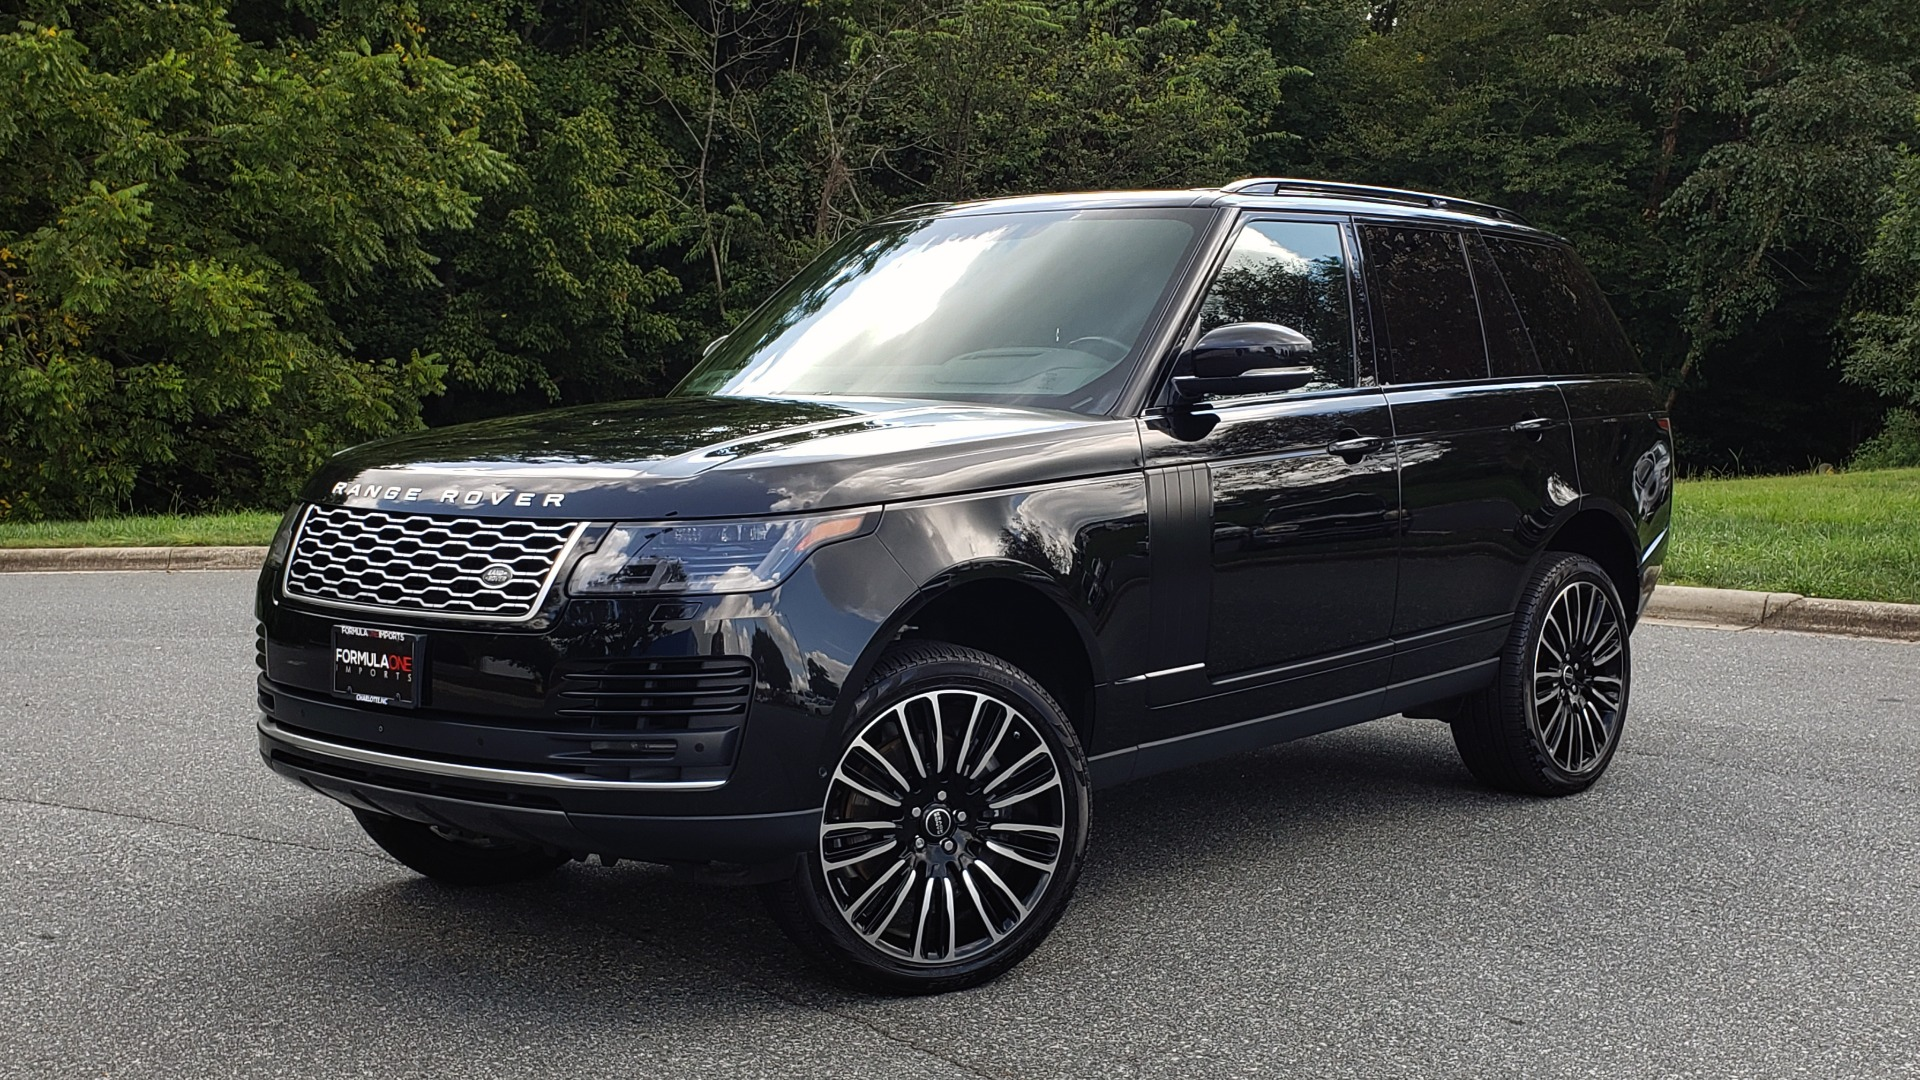 Used 2019 Land Rover RANGE ROVER SCV8 / NAV / PANO-ROOF / MERIDIAN / REARVIEW for sale Sold at Formula Imports in Charlotte NC 28227 1